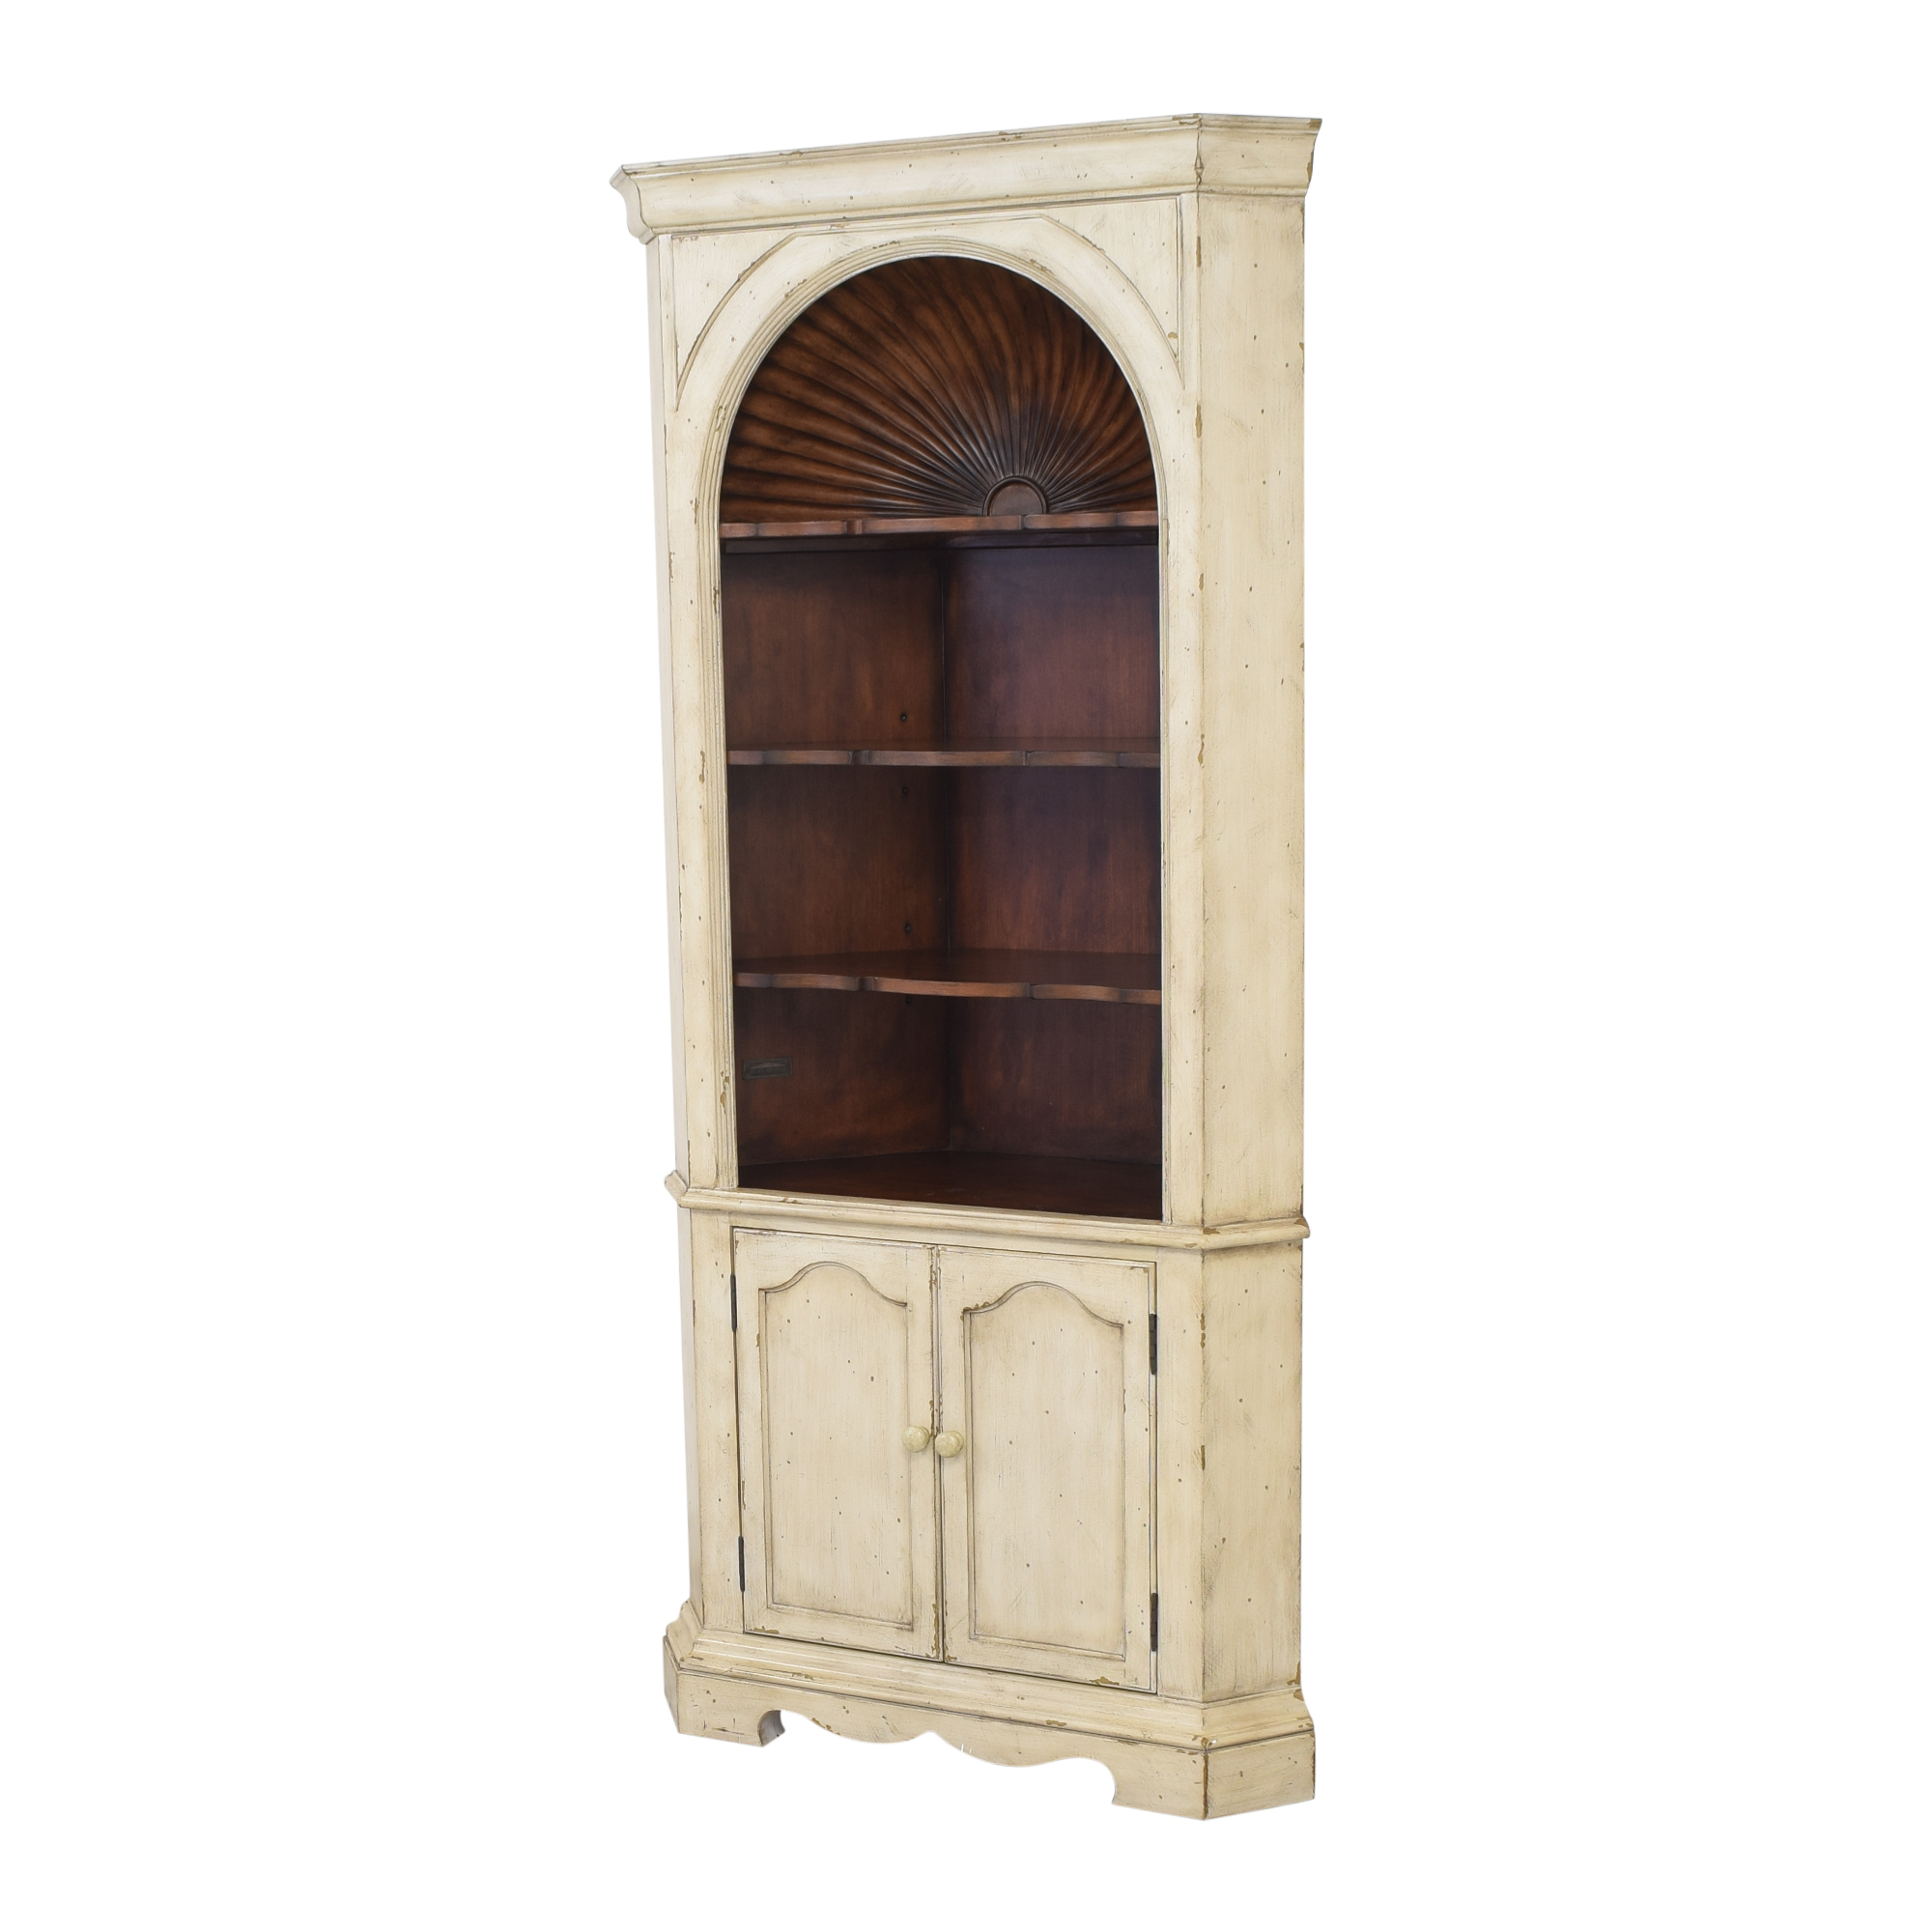 shop Domain Home Country French Corner Cabinet Domain Cabinets & Sideboards